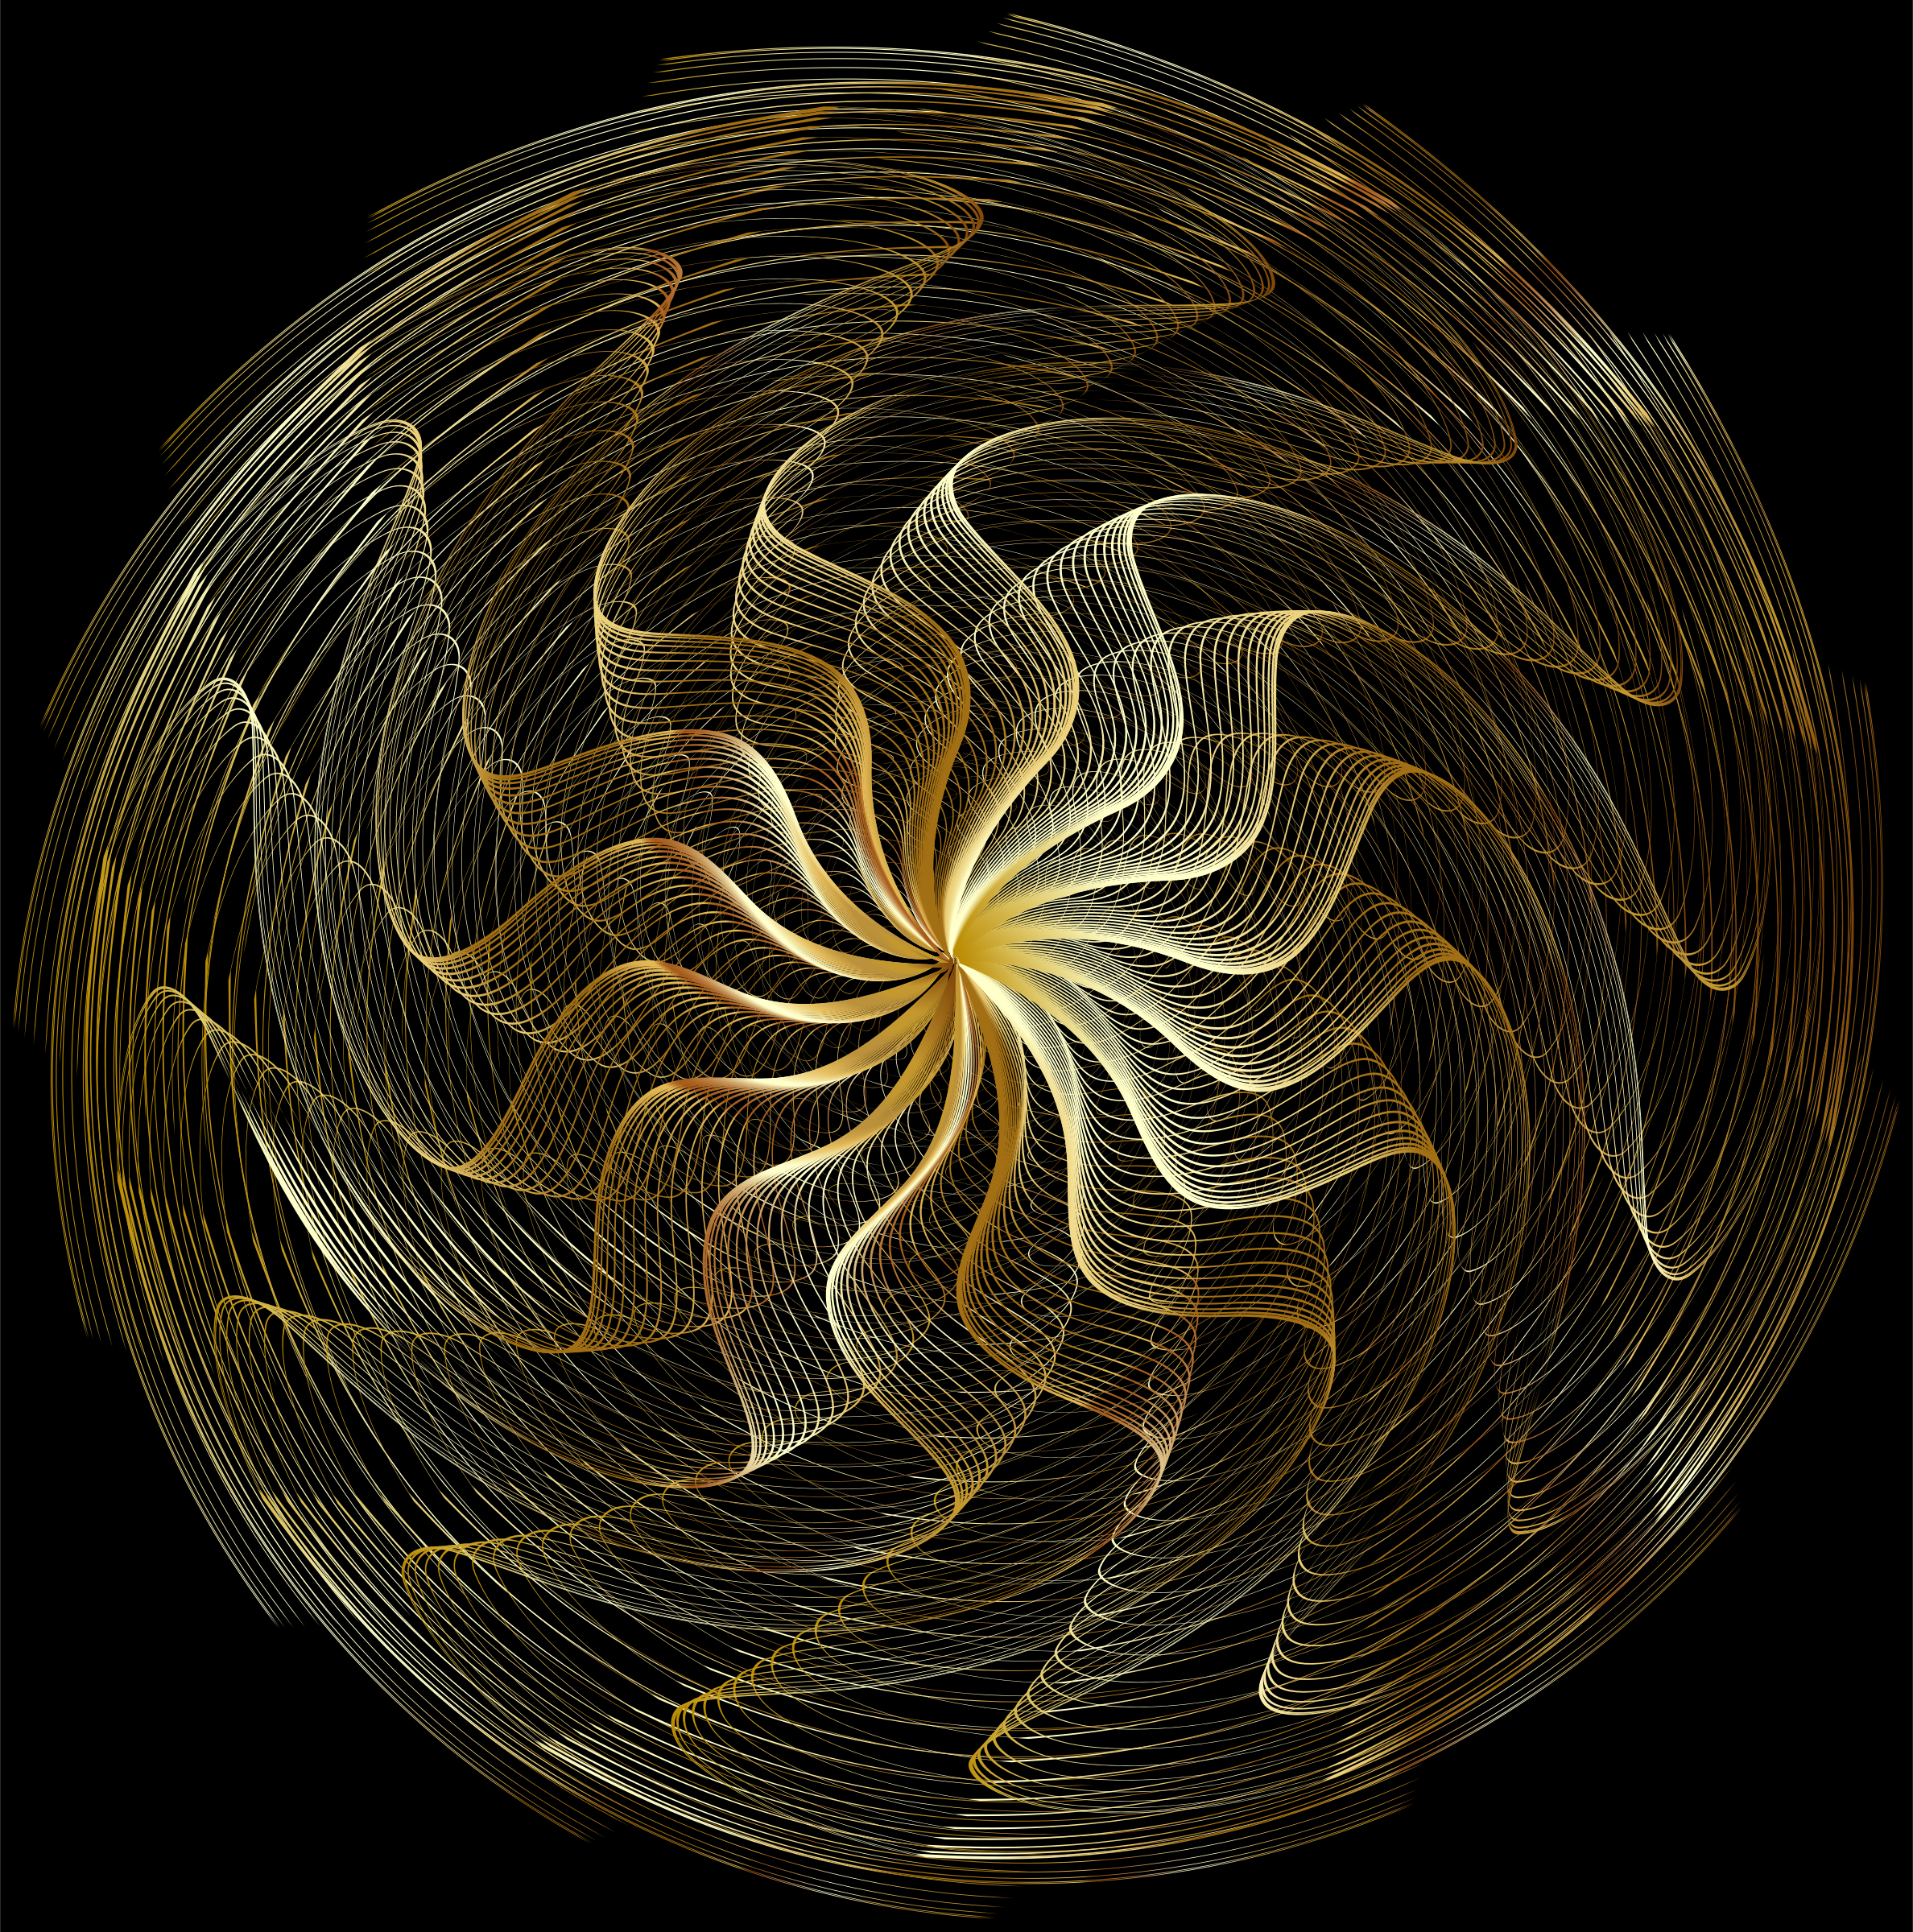 Colorful Wavy Vortex Line Art 2 by GDJ